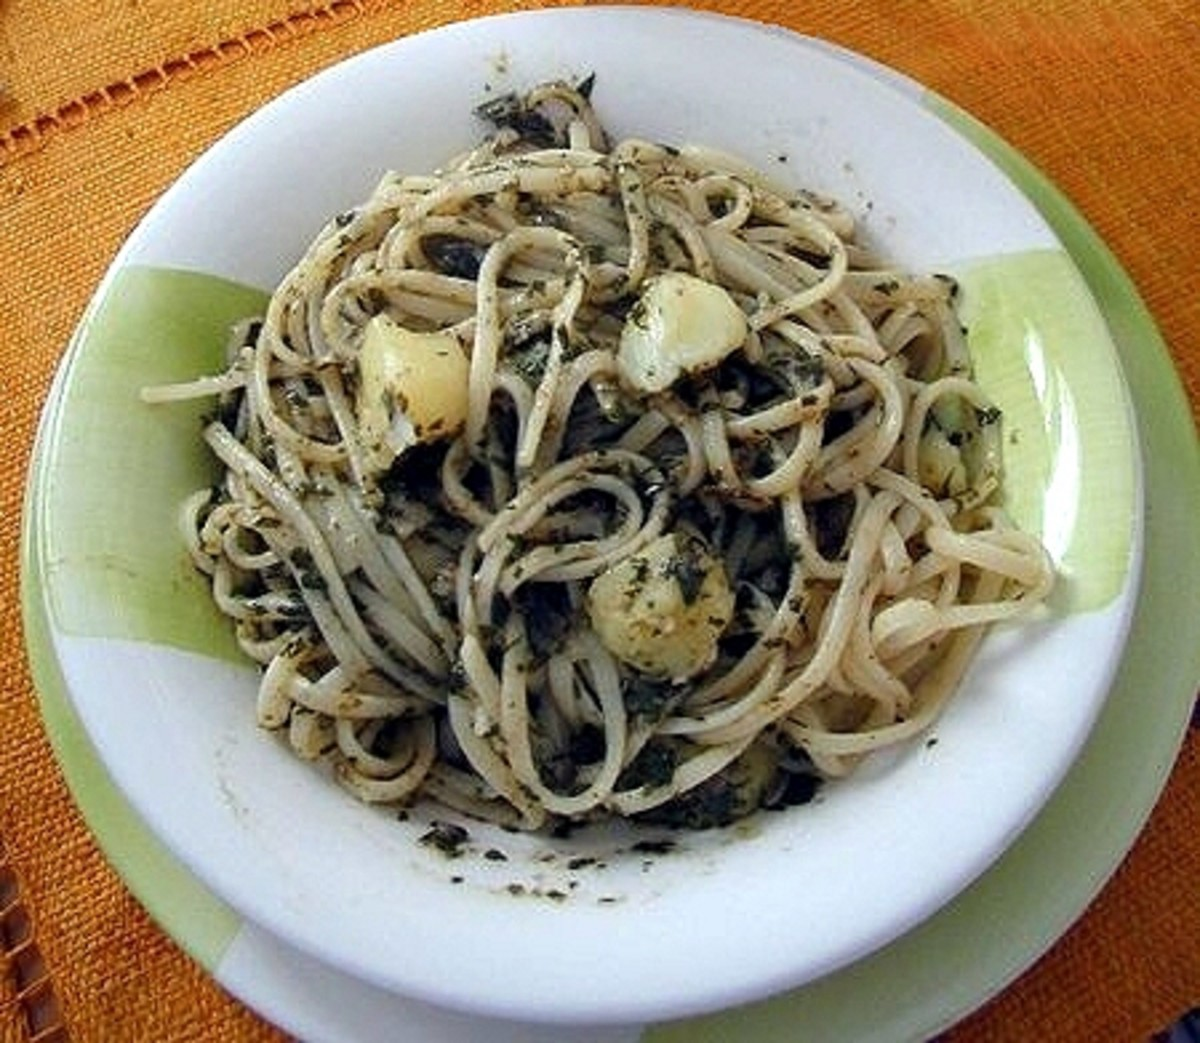 A Genoese sailor might eat pasta with pesto  depicted here because it was local food